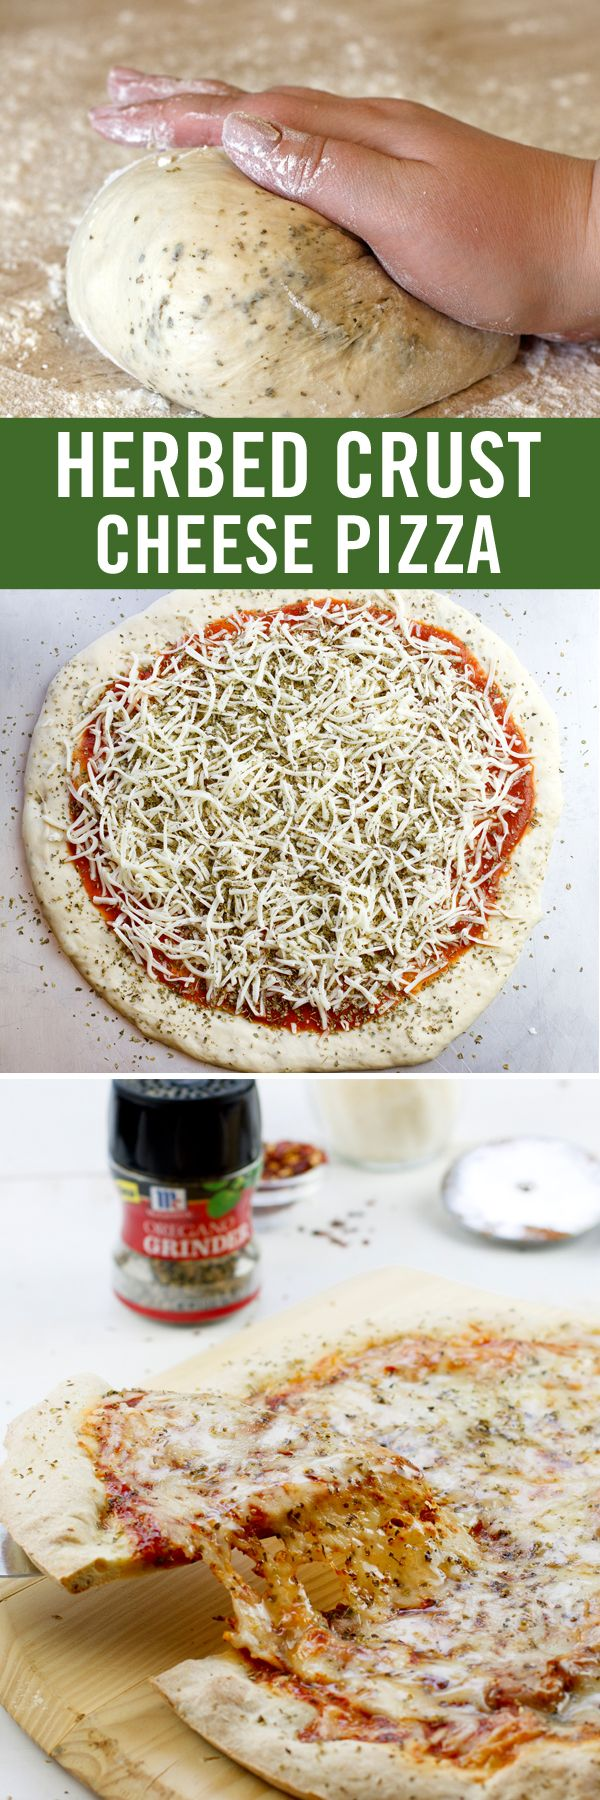 This cheese pizza recipe gets more flavorful and fun with our Oregano Herb Grinder. Twist the cap to infuse store-bought pizza dough with fresh-ground oregano. Top with additional oregano to bake the flavor right in. Give the bottle one final twist and serve the finished slice for an easy weeknight meal.